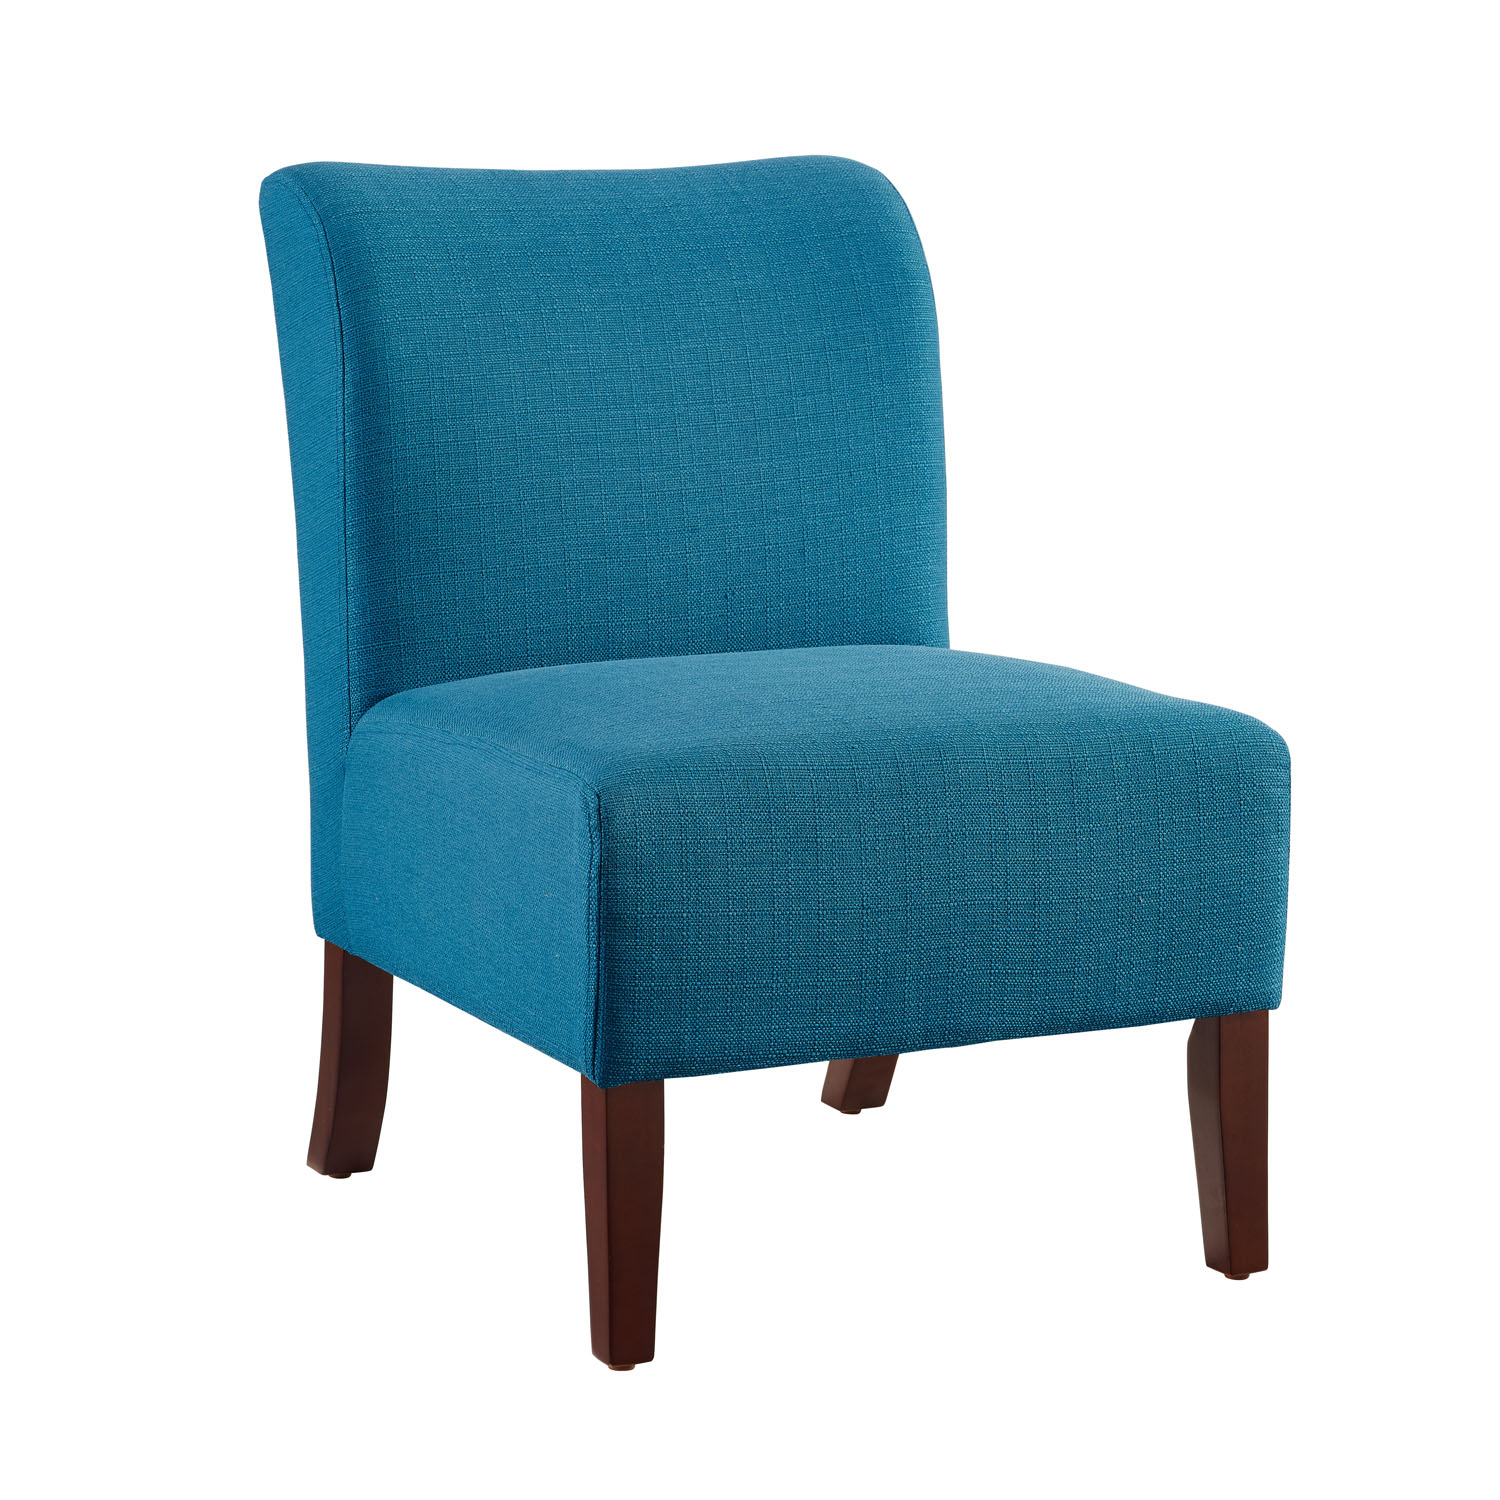 Blue Slipper Chair Linon Julie Curved Back Blue Slipper Chair